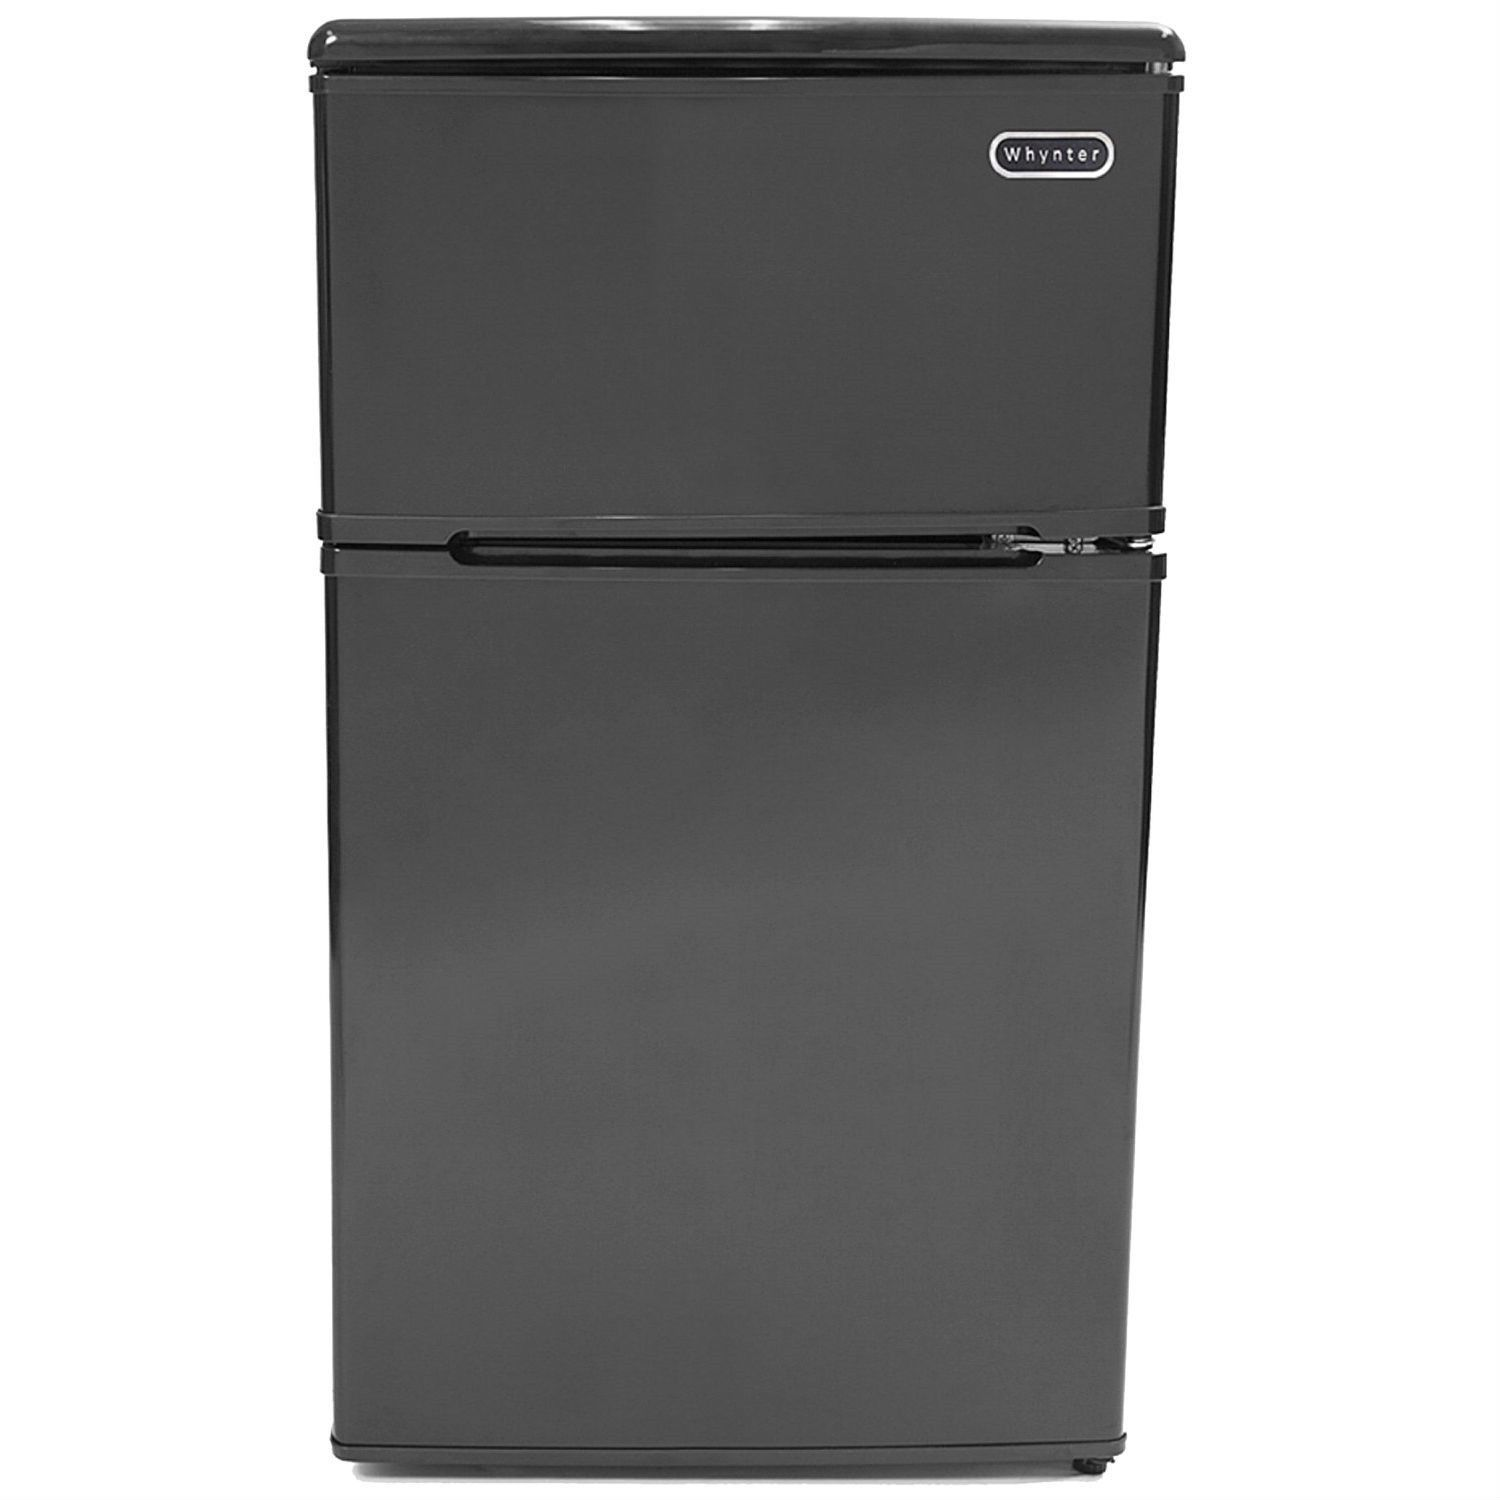 3 1 Cubic Foot Energy Star pact Refrigerator Freezer in Black Dry